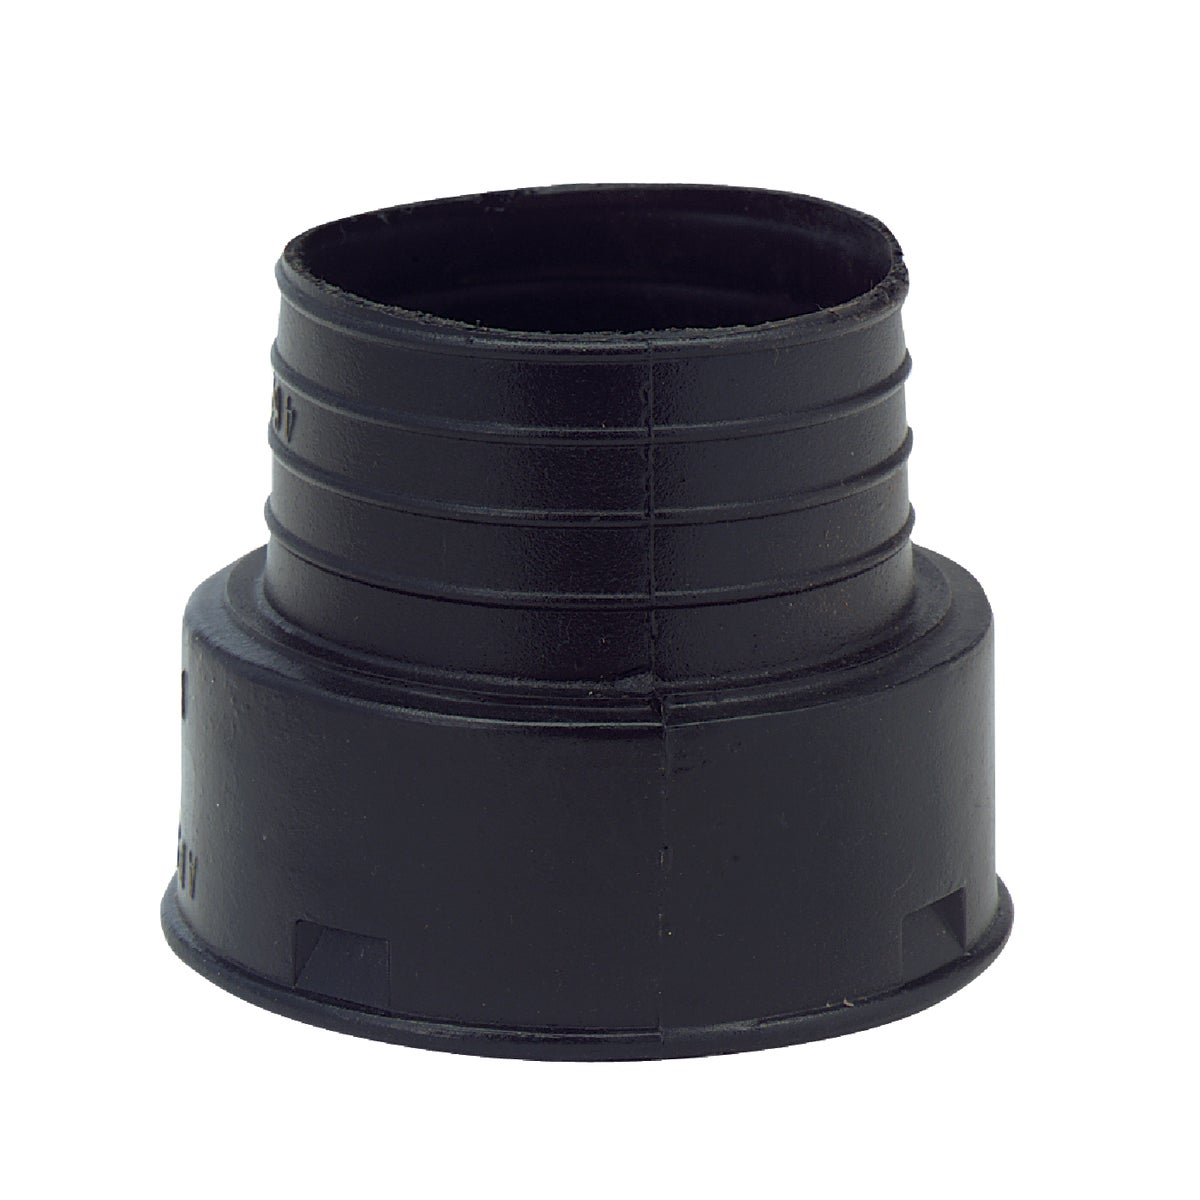 "4"" ADAPTER - 462AA by Advanced Drainage Sy"